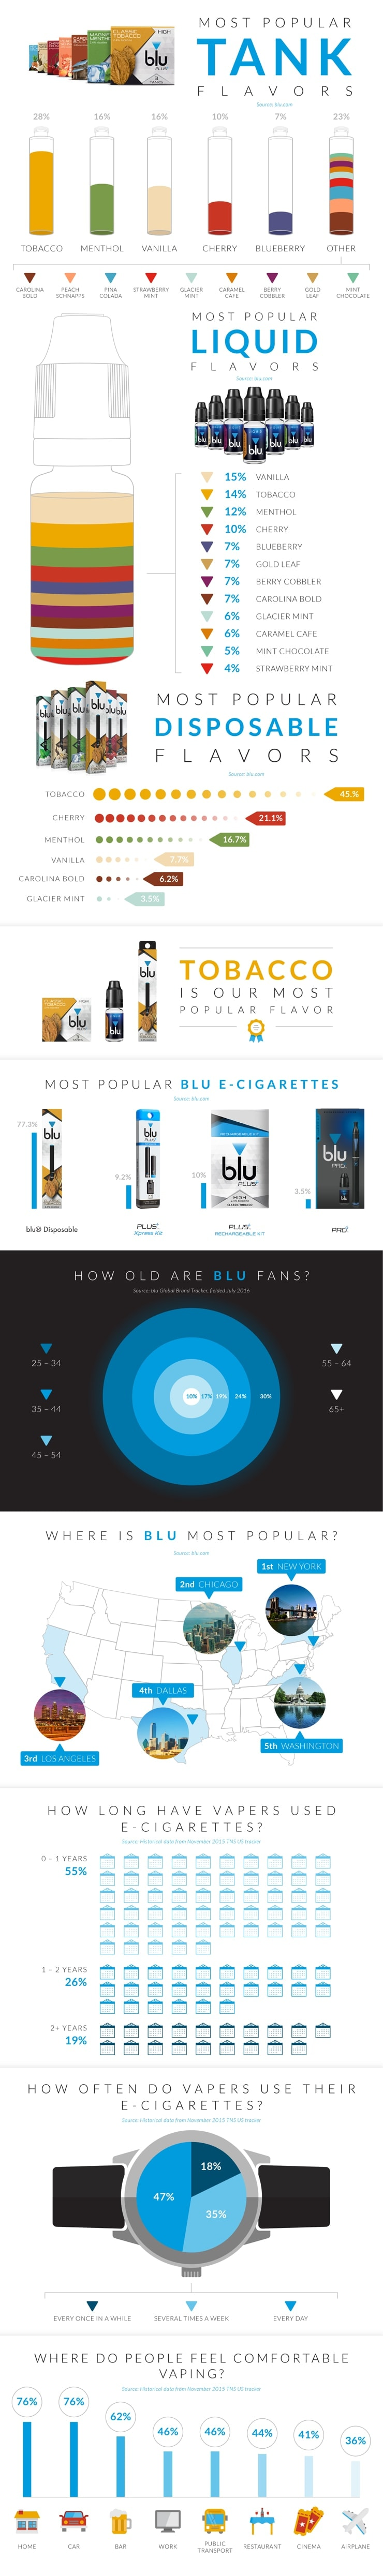 Which blu works for you infographic giving details of where, how and when blu e-cigarettes are used